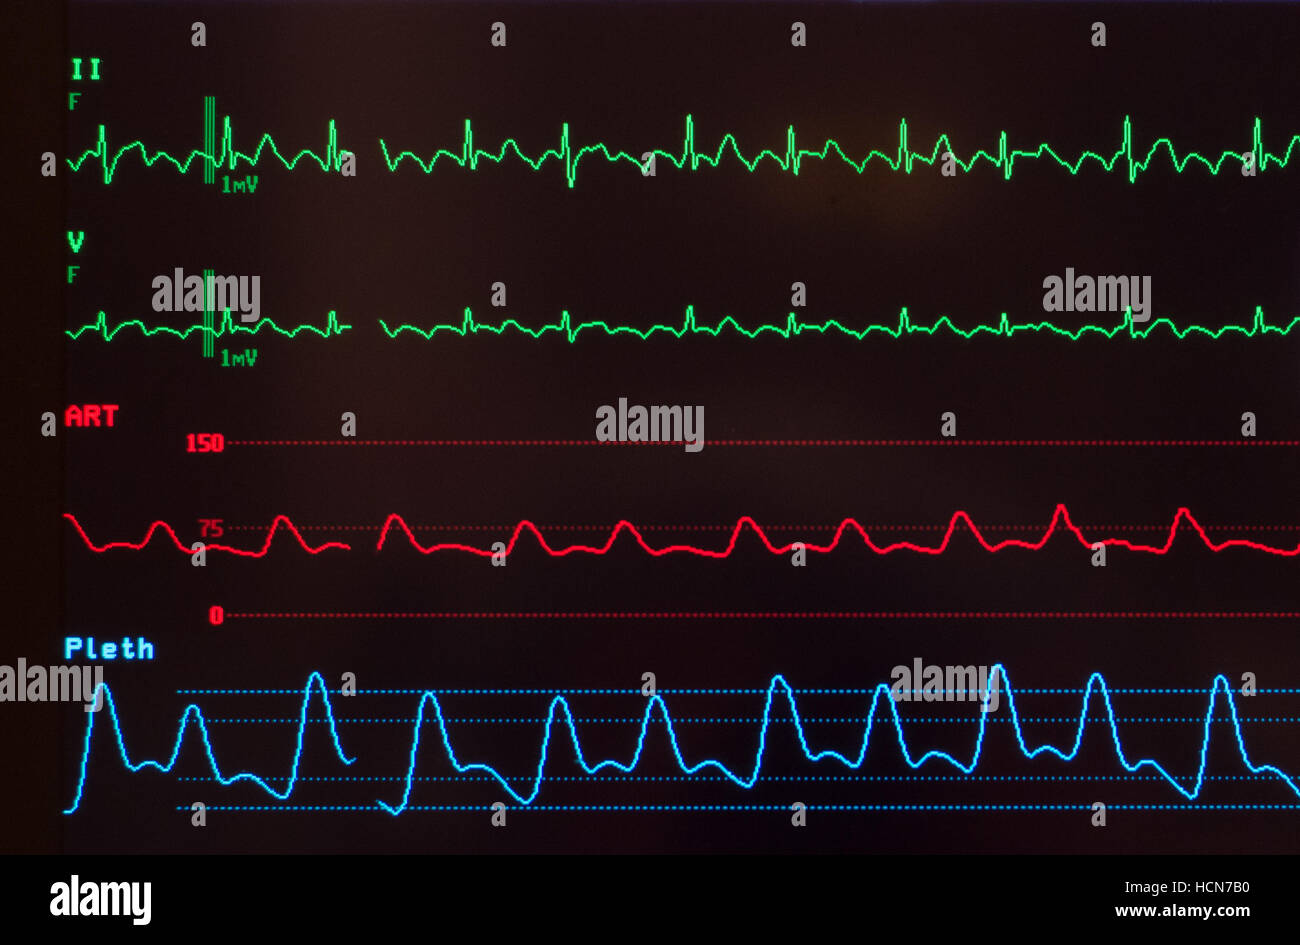 Close up of medical monitor with ECG with atrial flutter, arterial blood pressure wave and oxygen saturation level - Stock Image